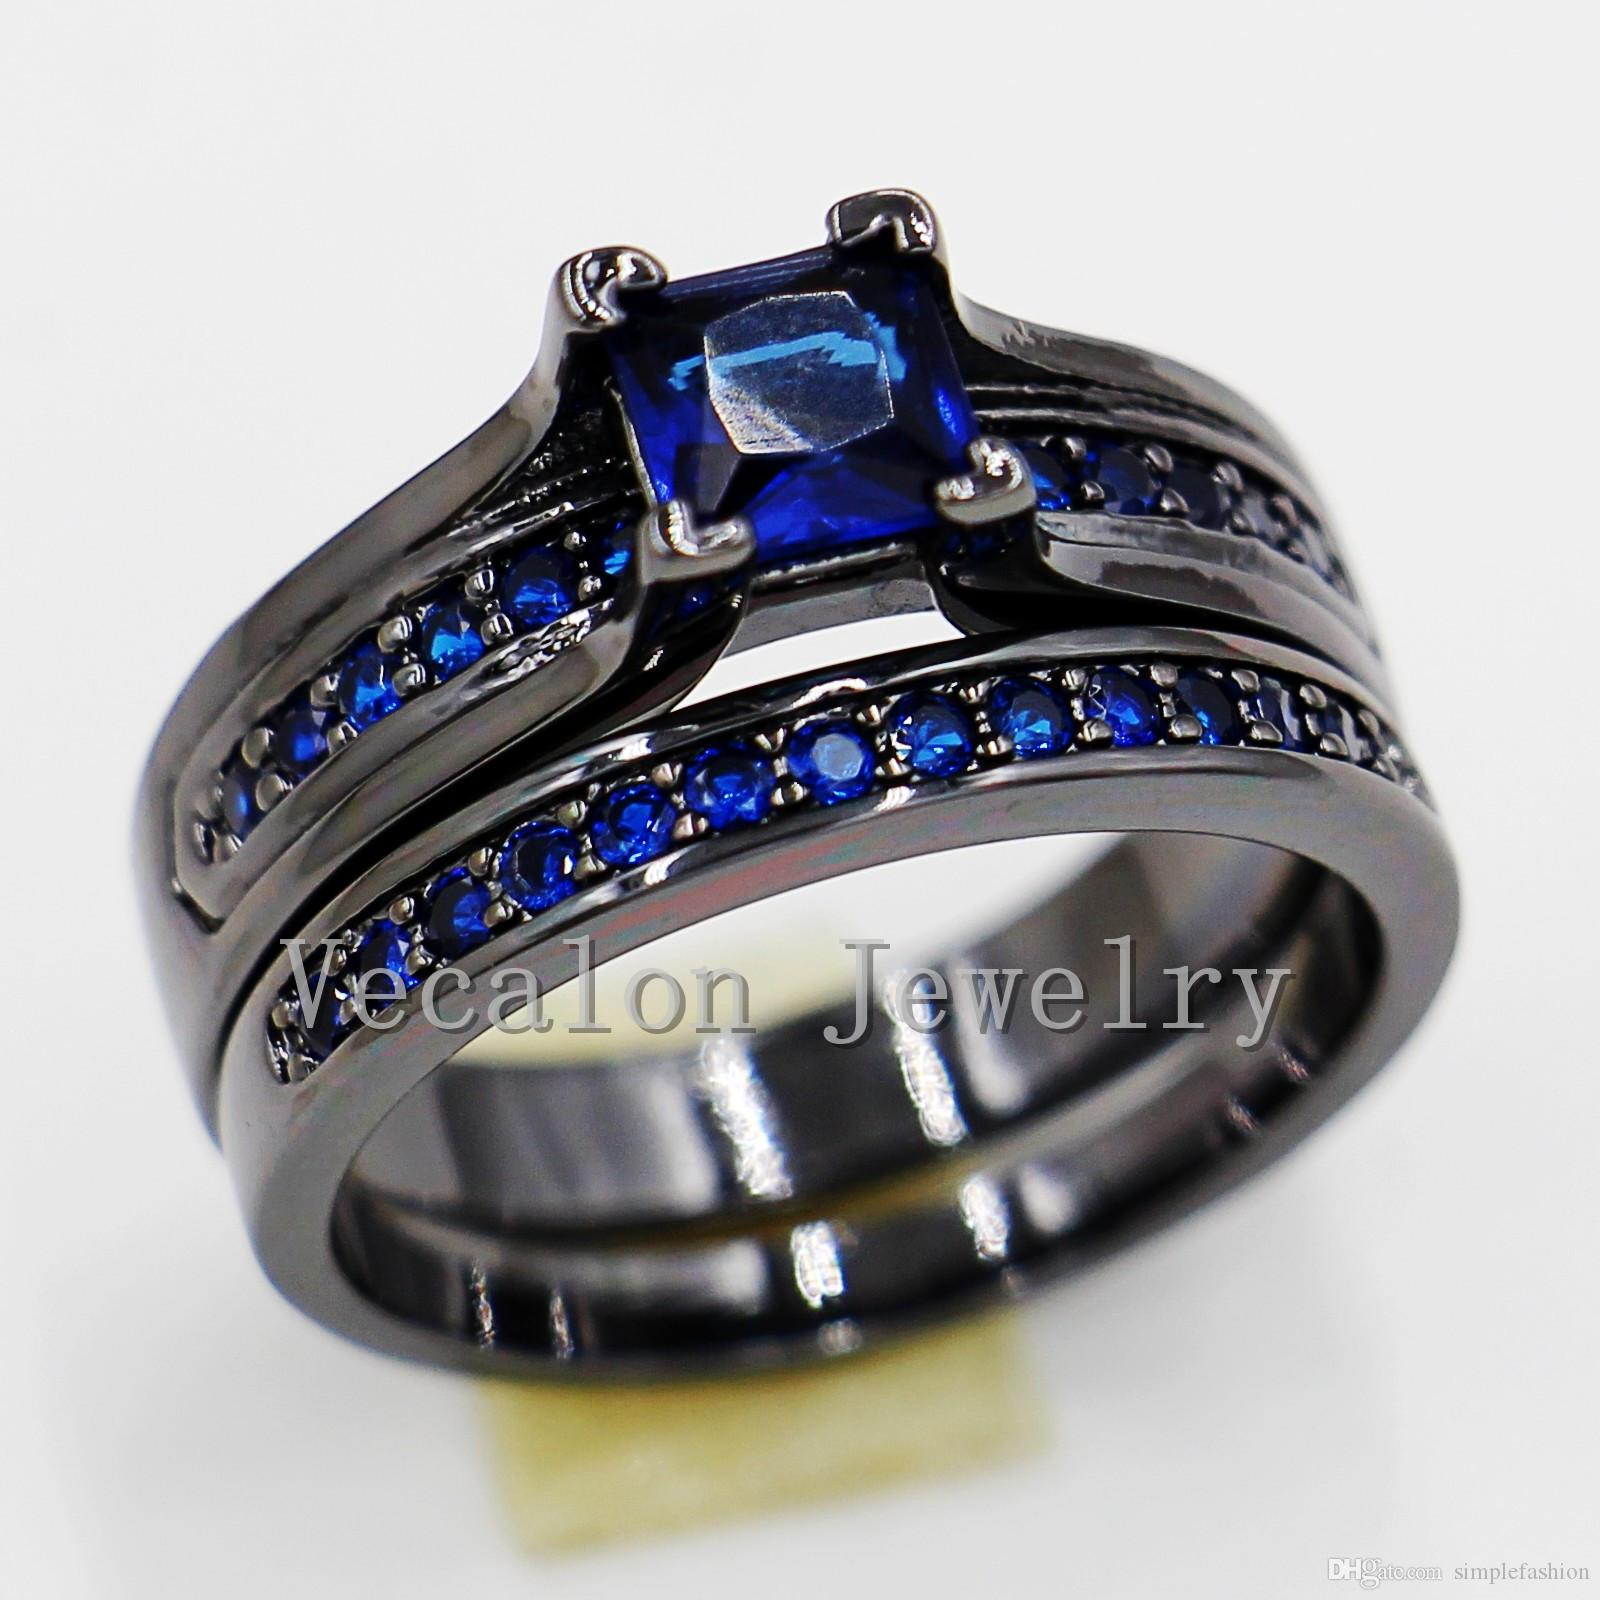 2019 Vecalon 2016 Women Engagement Wedding Band Ring Set Blue Sapphire Simulated Diamond Cz 10kt Black Gold Filled Party Accessories From Simplefashion: Blue Shappire Black Wedding Band At Reisefeber.org